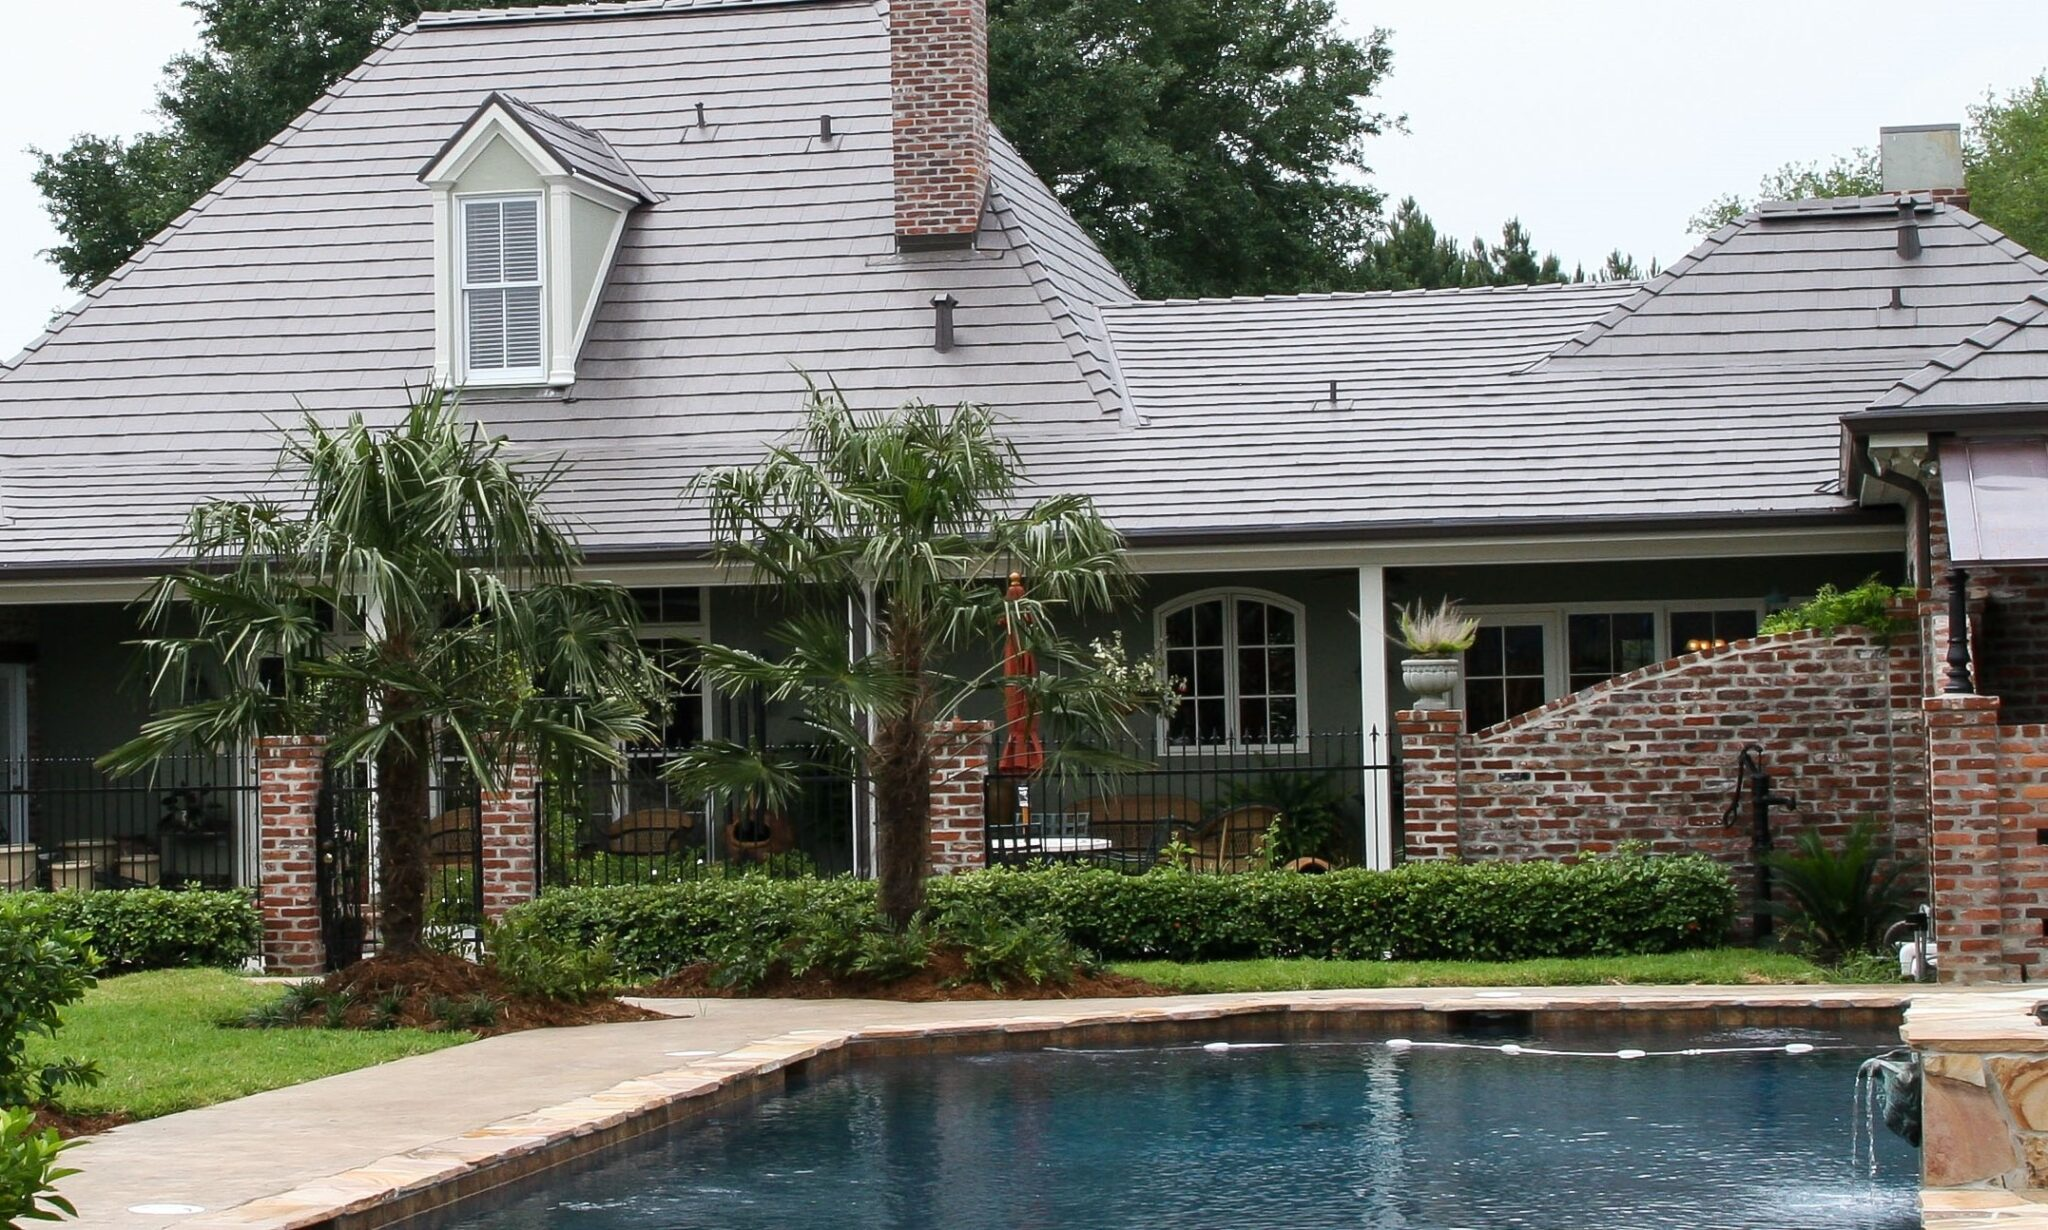 Fiddler's Roofing - Residential & Commercial Roofing - Central Florida Roofing